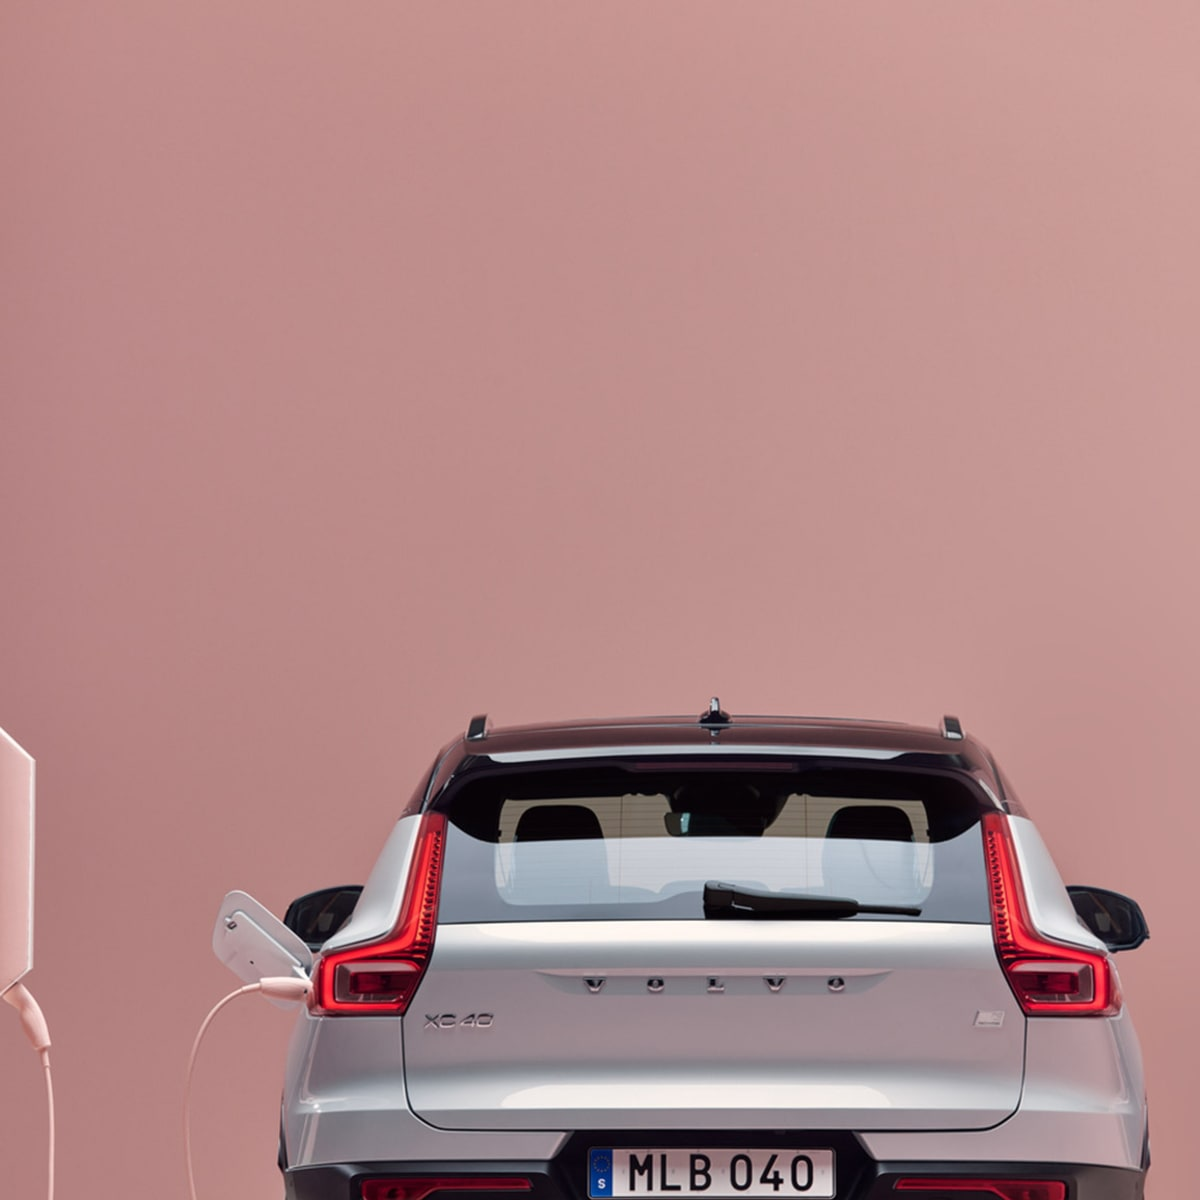 Volvo car rear view